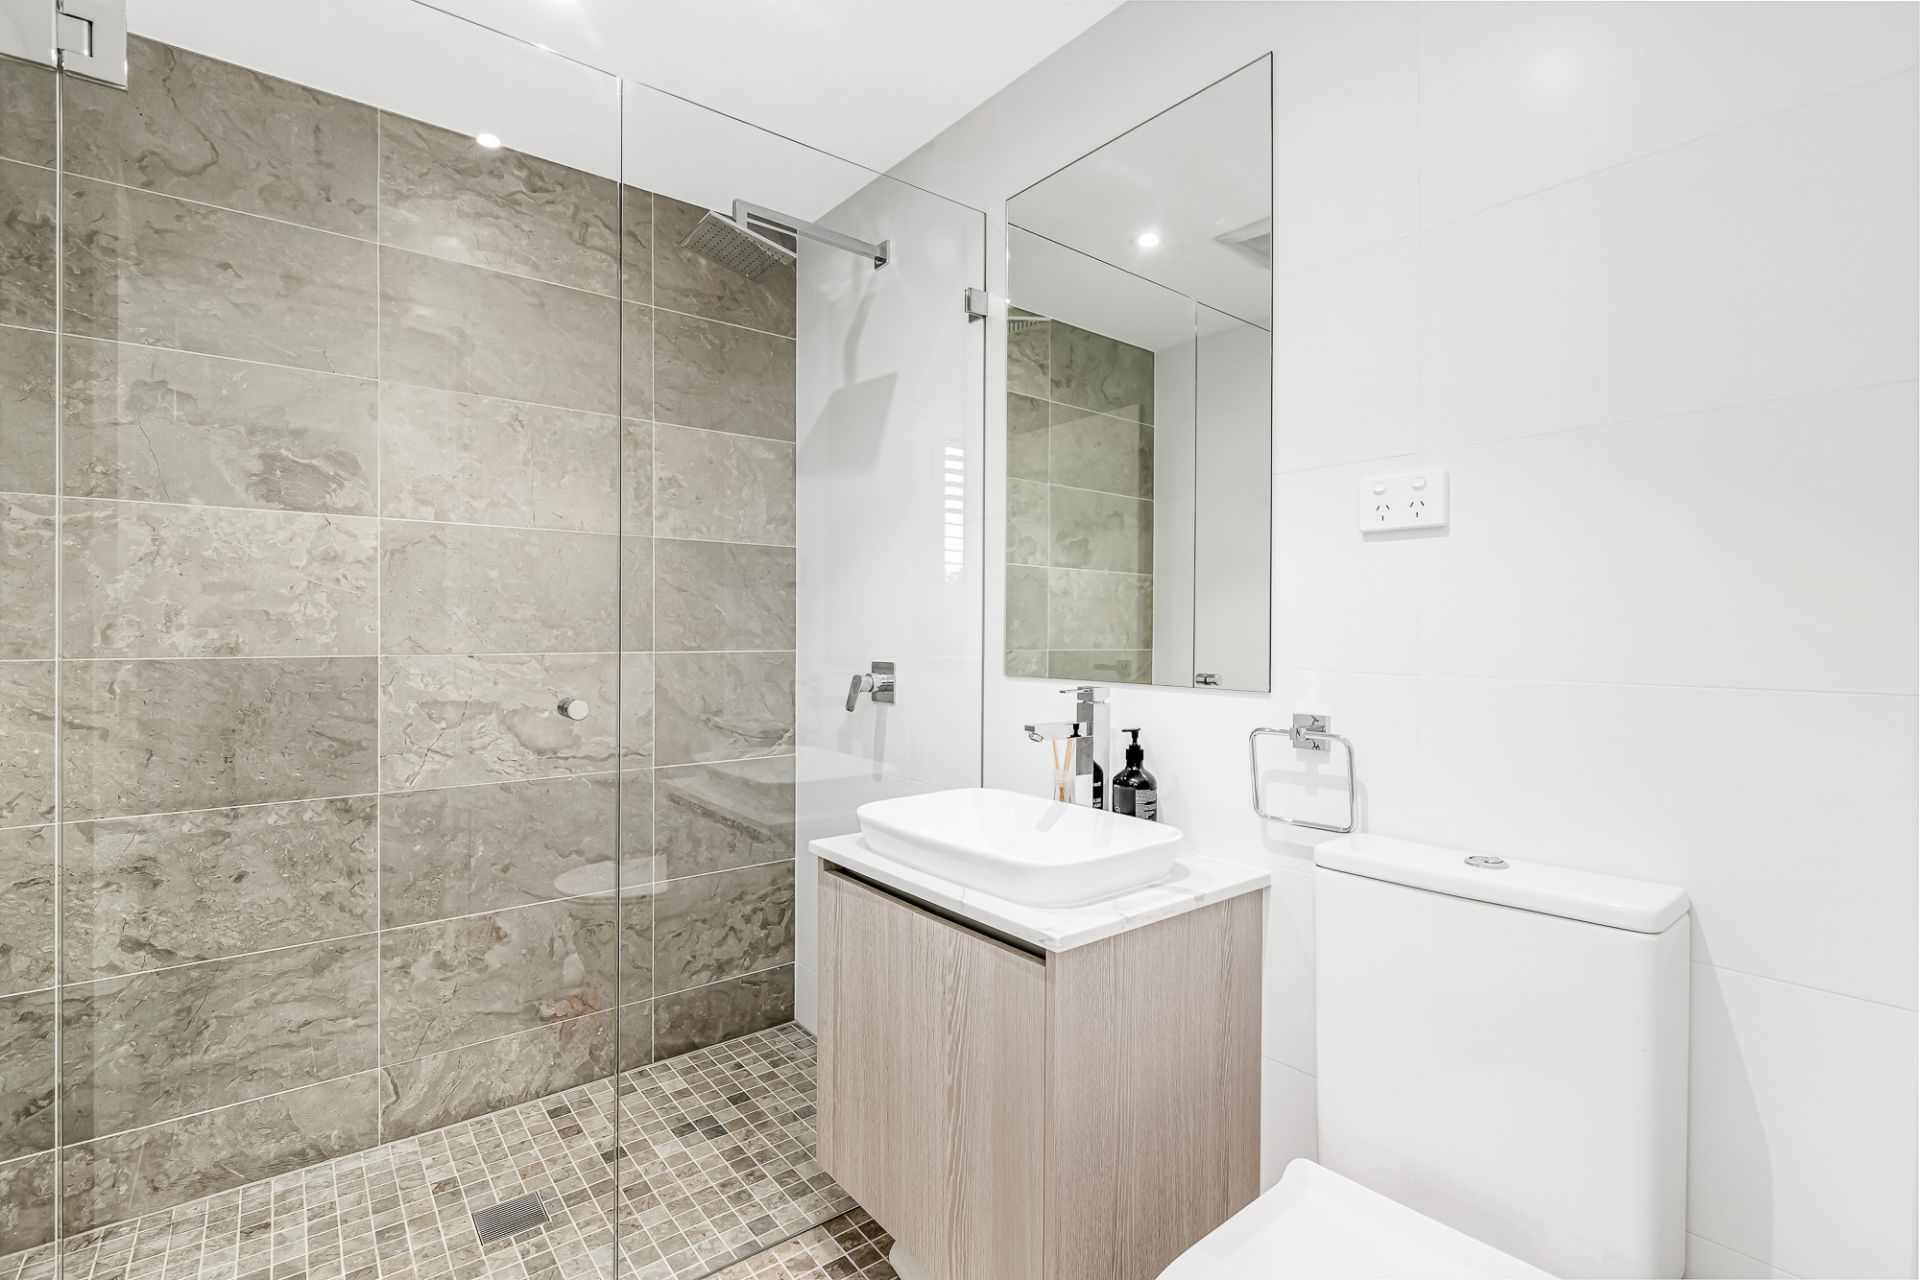 7/301 Alison Road, Coogee